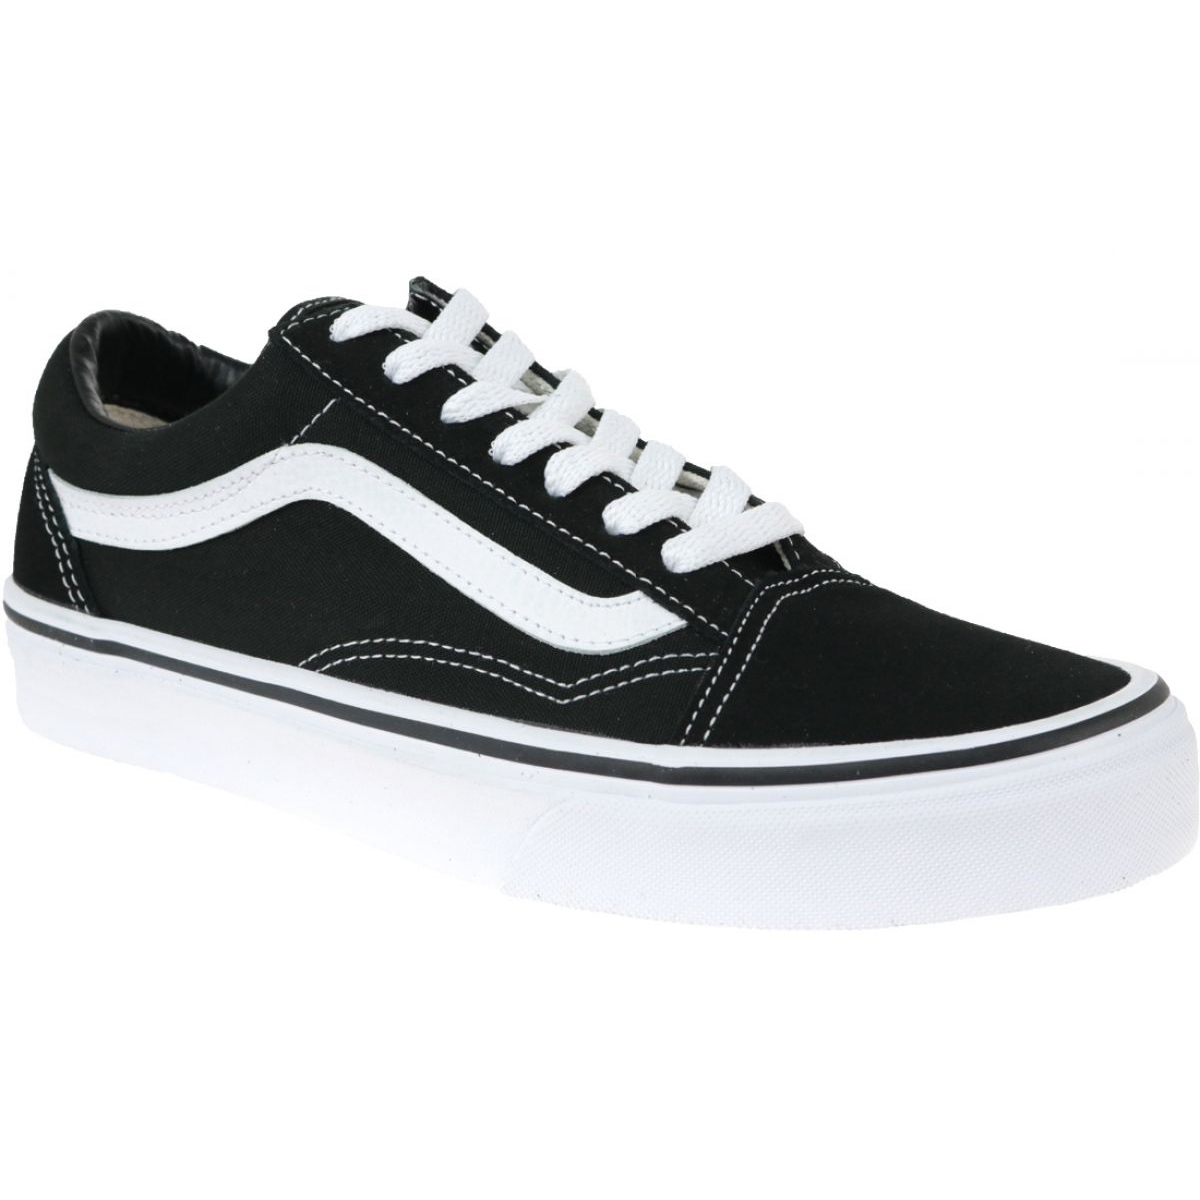 Details about Viking Chaussures Vans Old Skool VD3HY28 noir